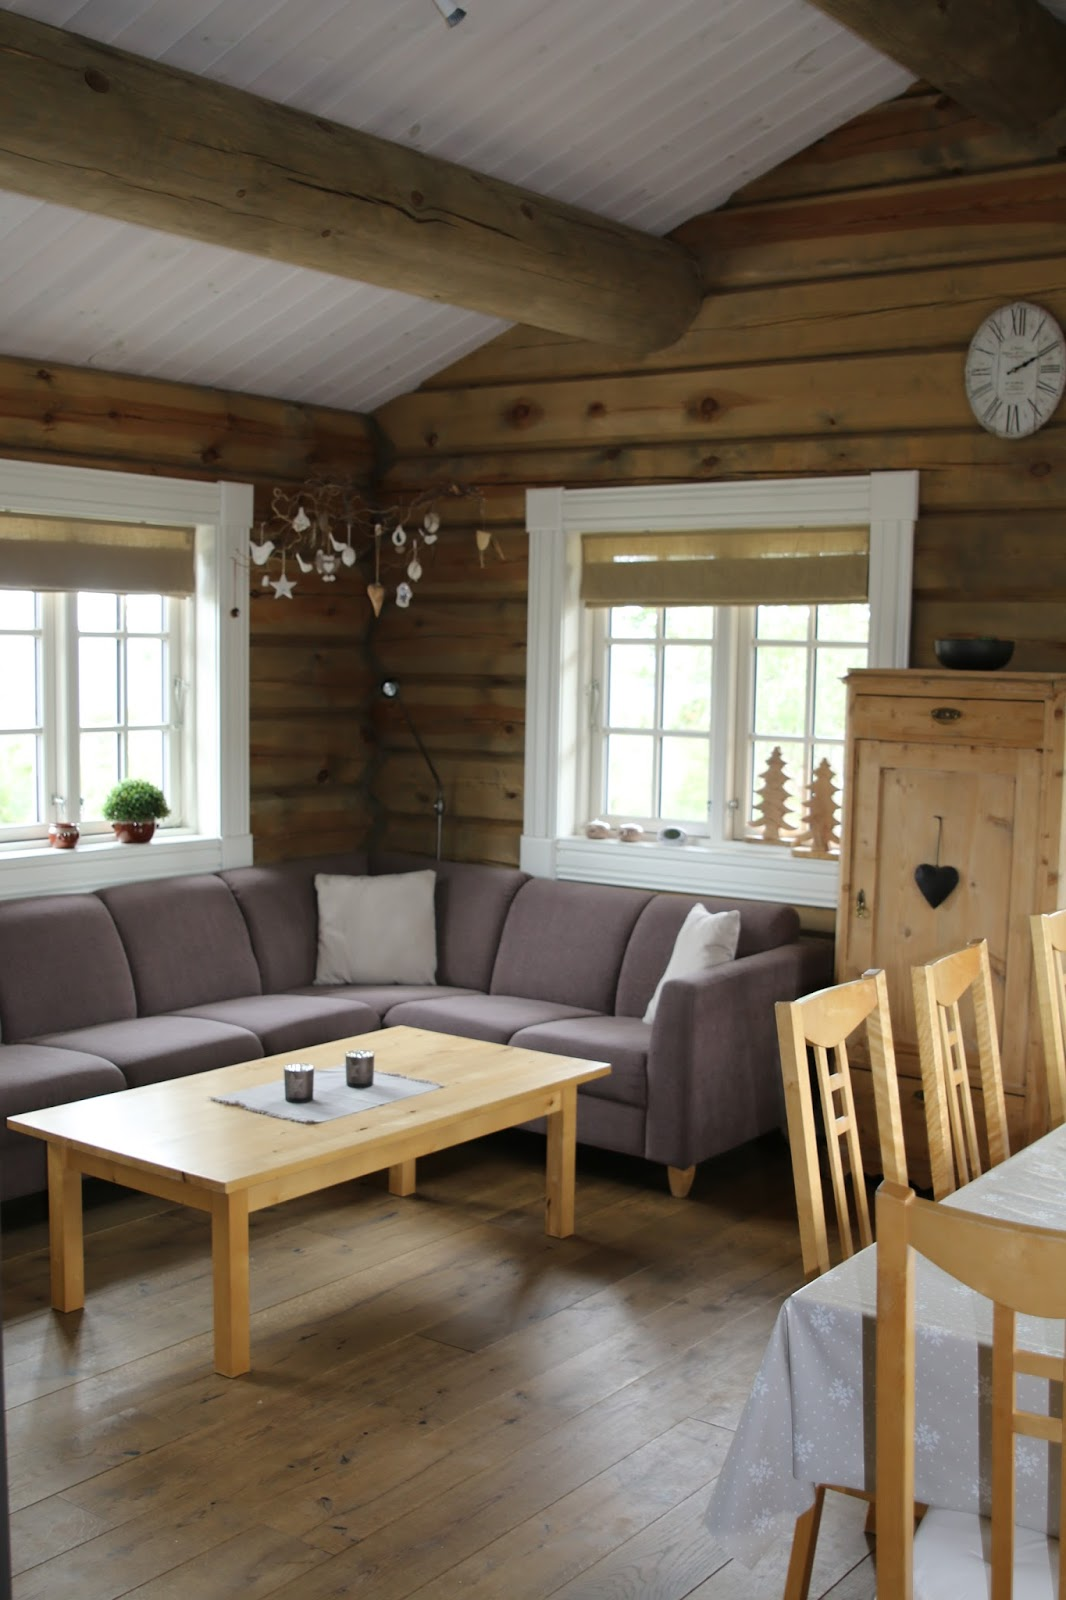 dressed with soul: norway: our very special holiday domicile - Traum Wohnzimmer Rustikal